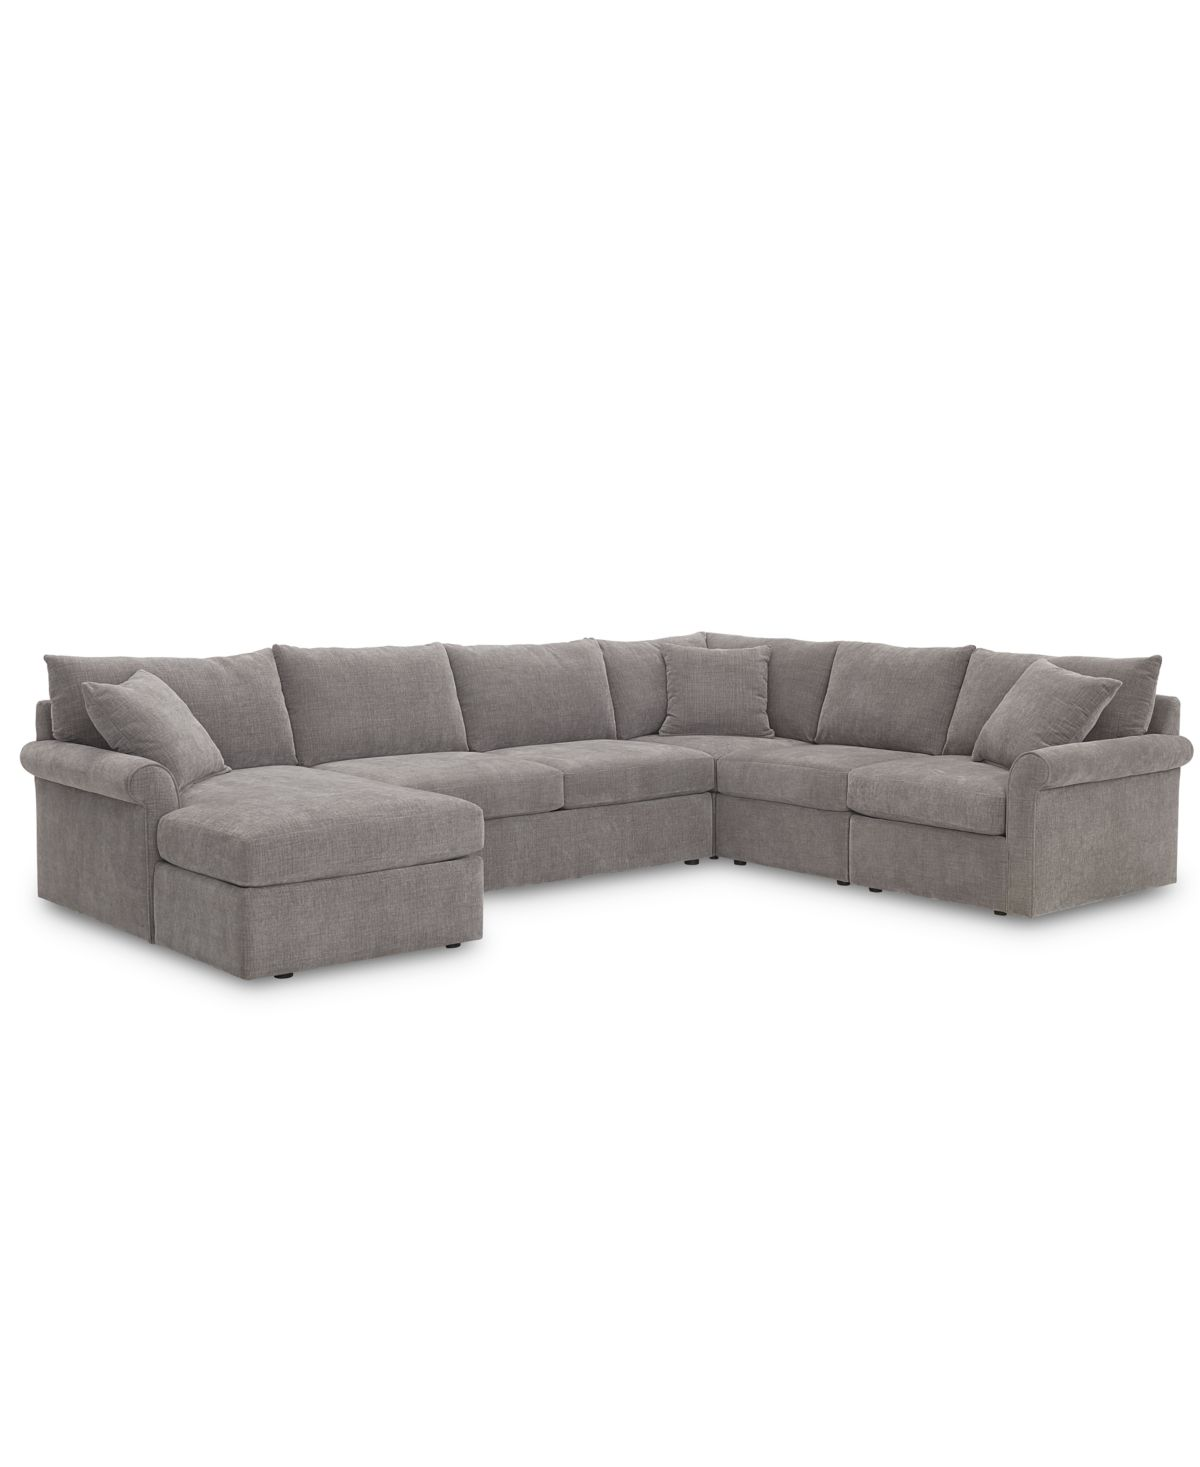 Best Wedport 5 Pc Fabric Modular Chaise Sectional Sofa With 400 x 300